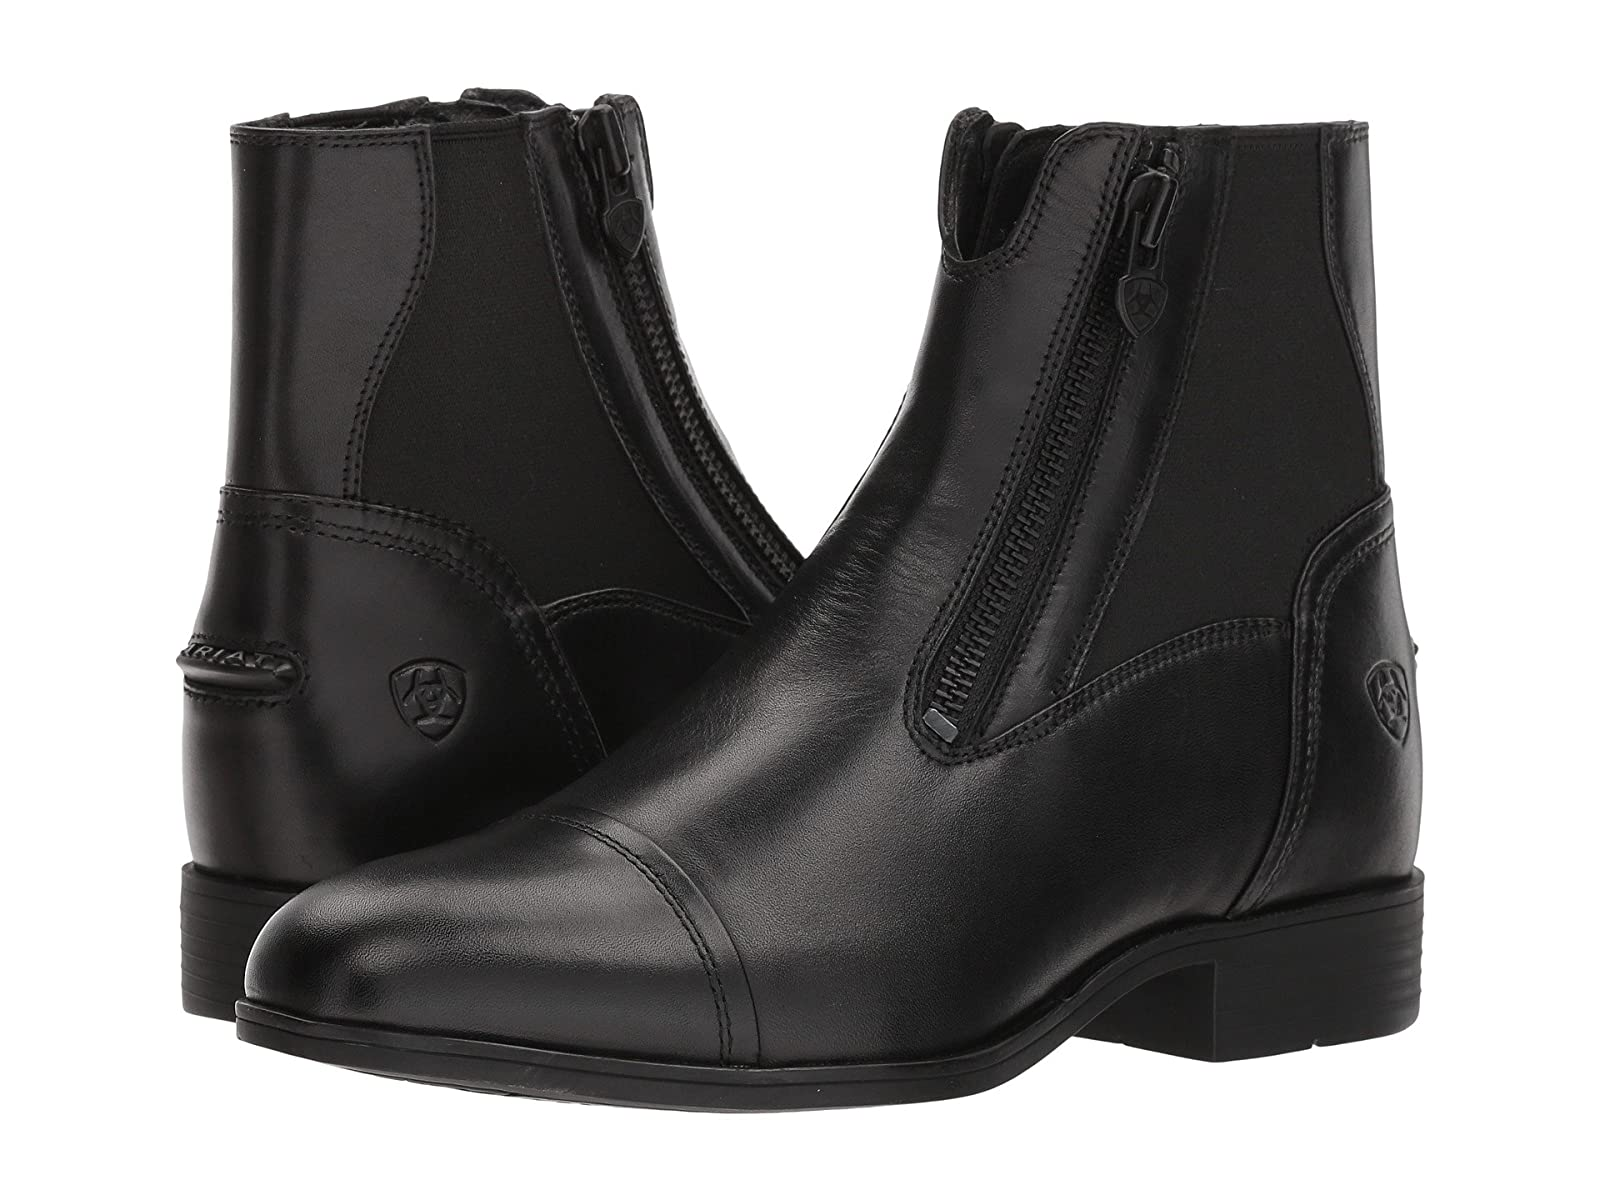 Ariat Kendron Pro PaddockSelling fashionable and eye-catching shoes